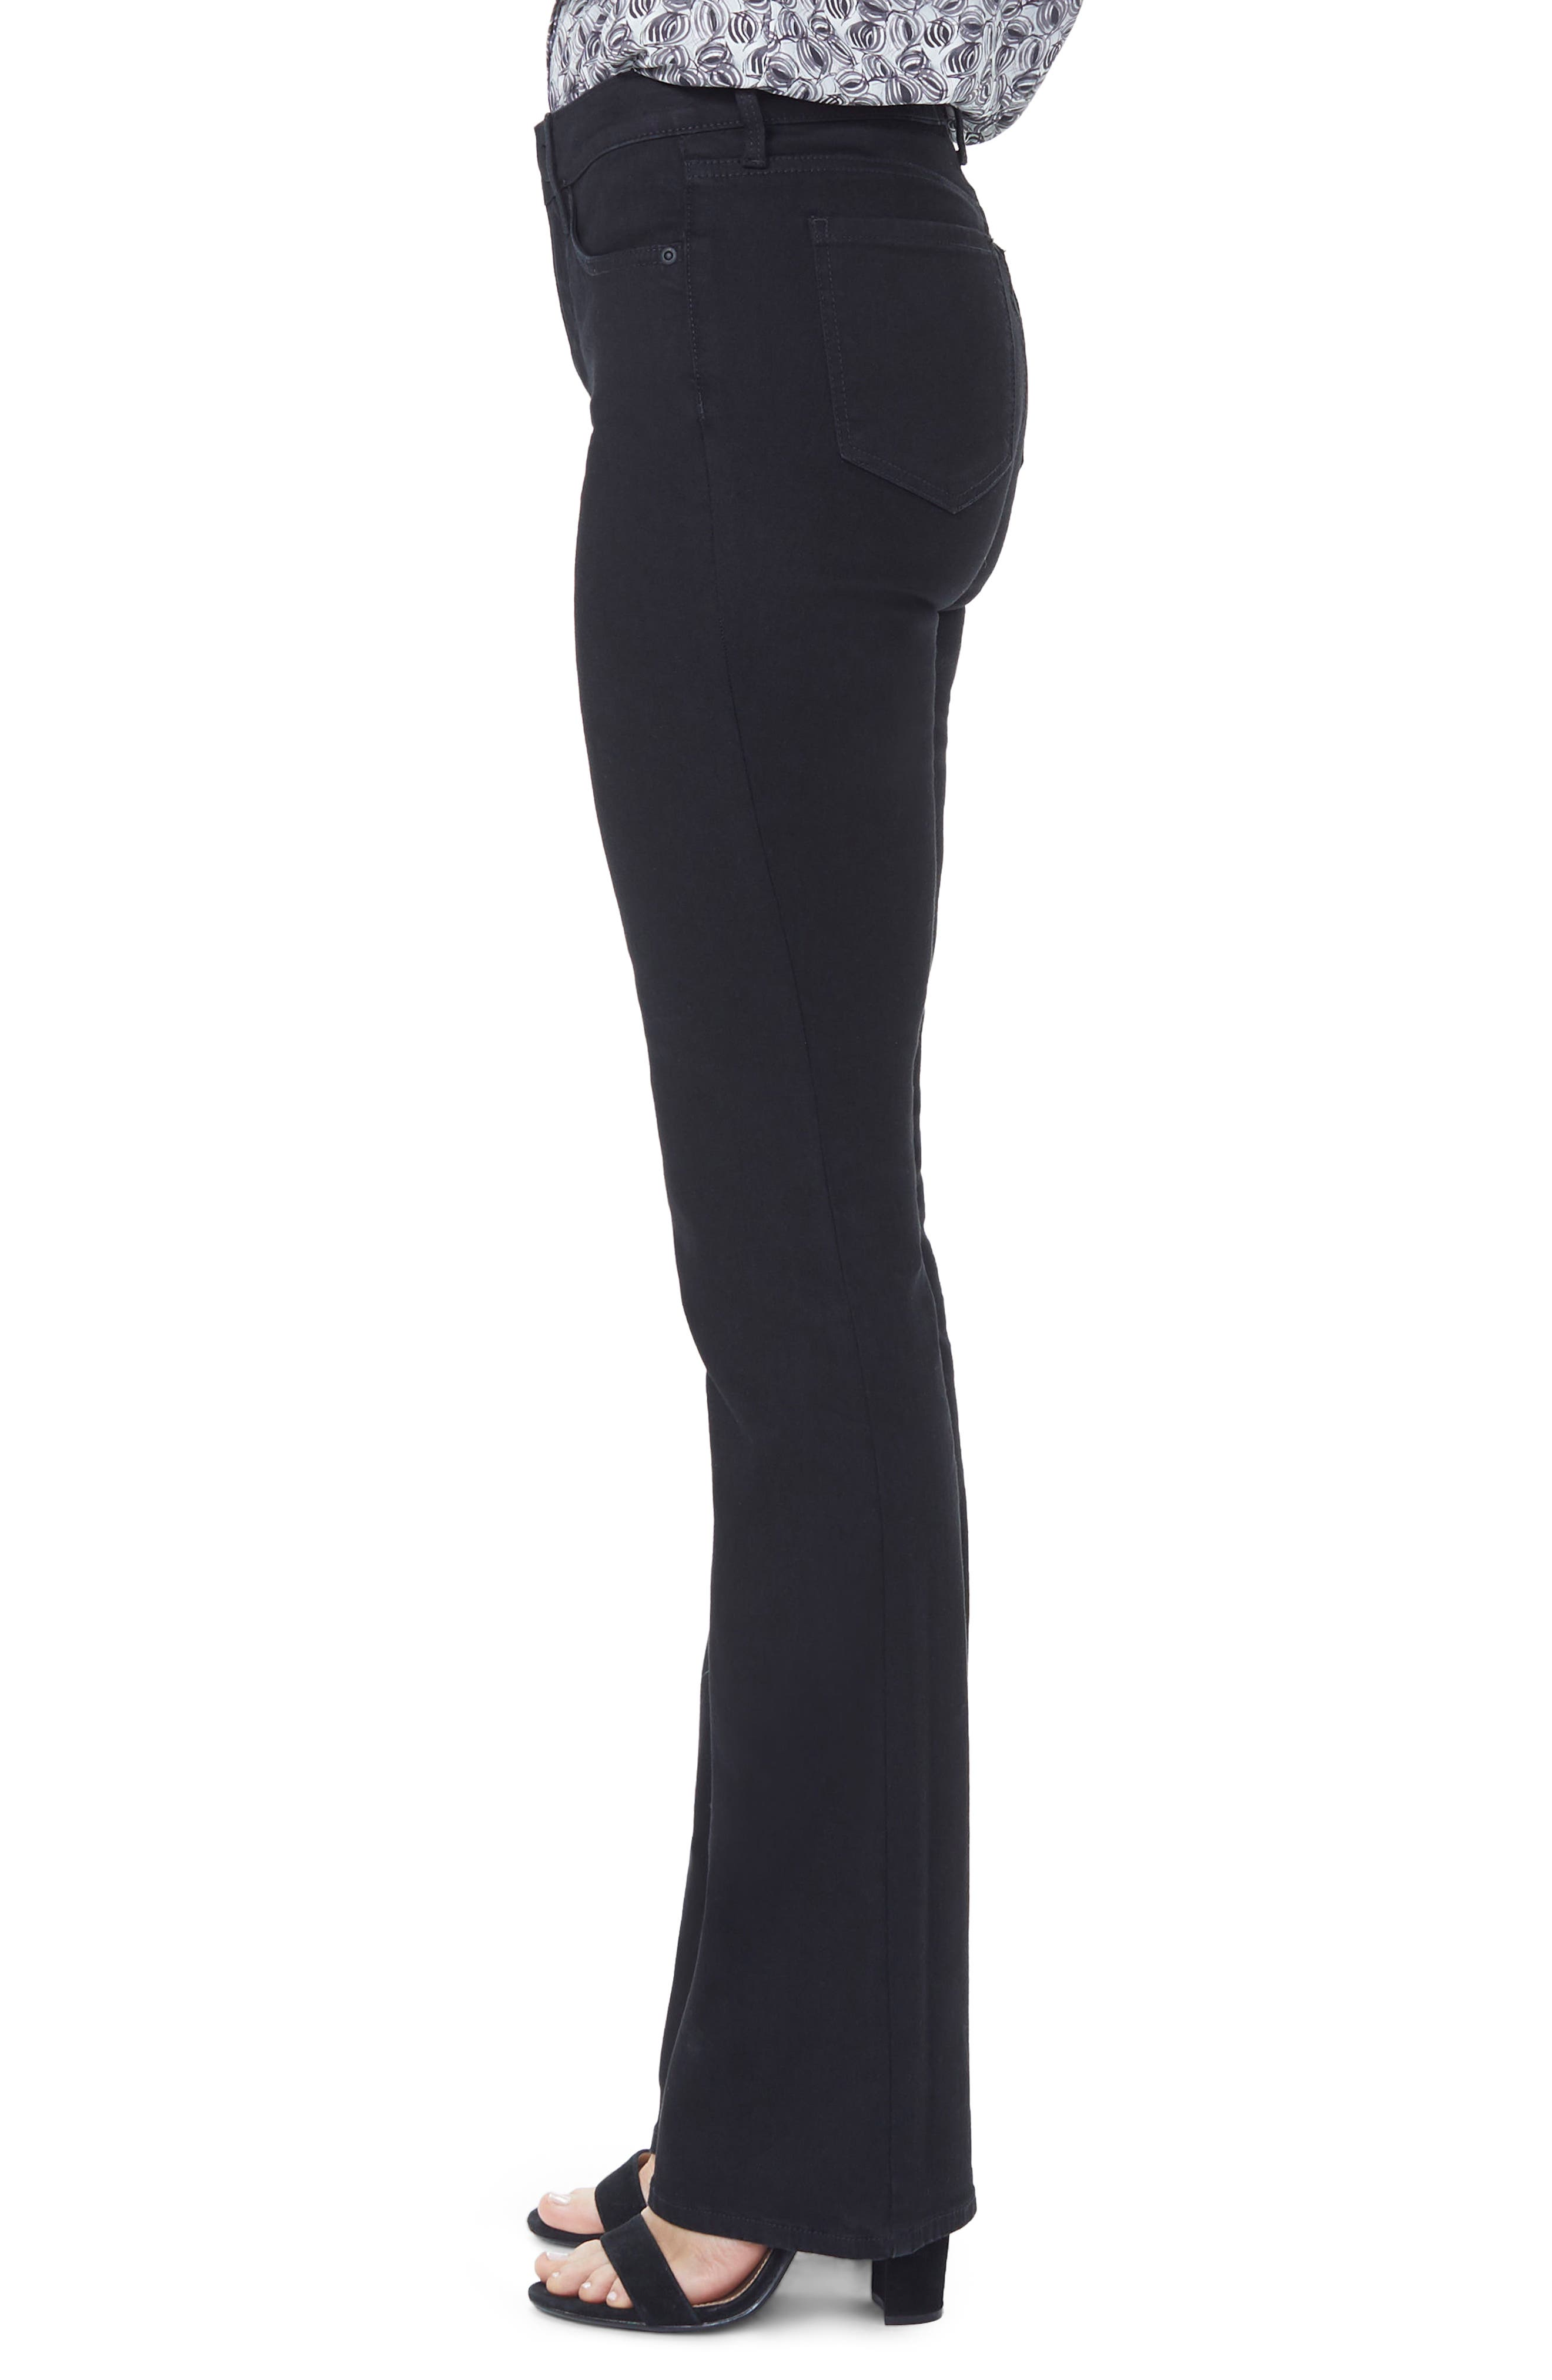 NYDJ, Barbara High Waist Stretch Bootcut Jeans, Alternate thumbnail 4, color, BLACK